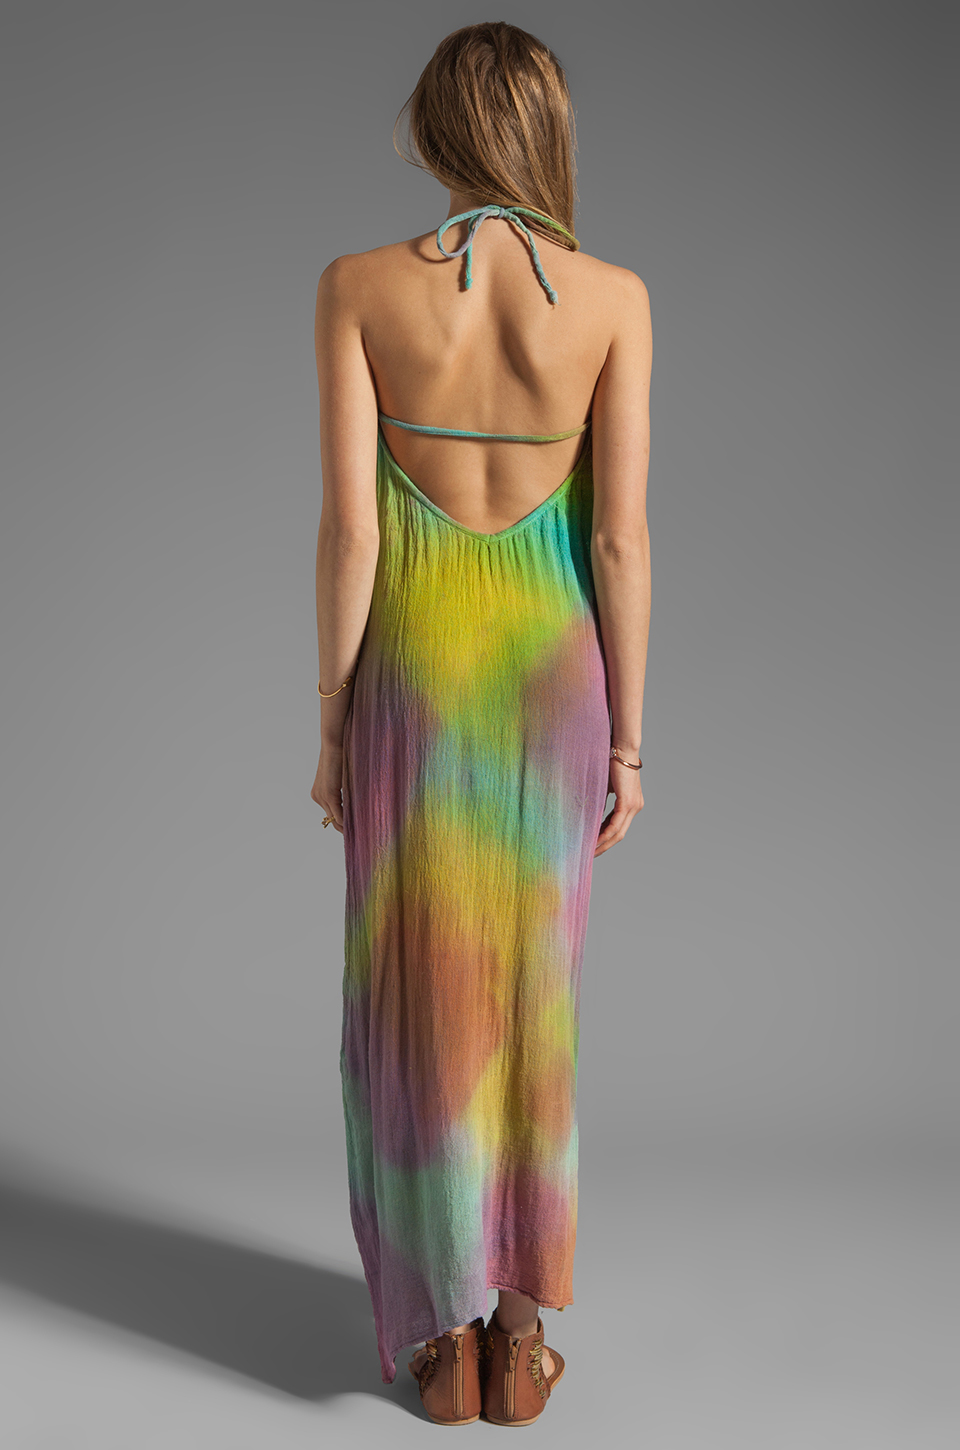 Jen's Pirate Booty Zumirez Maxi Dress in Flashback Bright Tie Dye